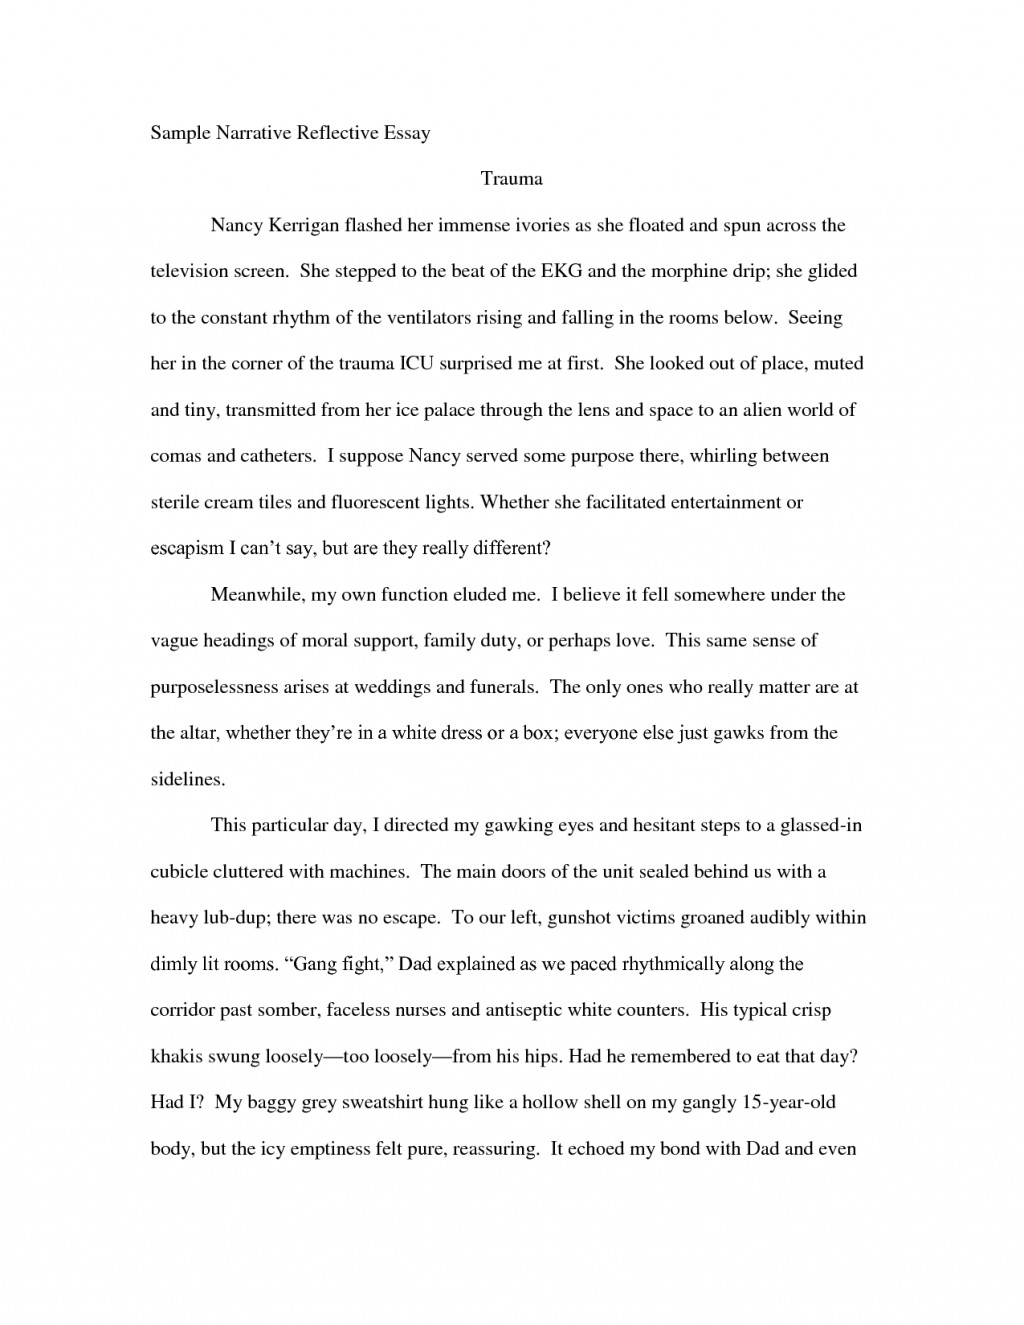 009 I Have Dream Essay Example My Life Examples Best Ideas Of Analyze Stunning Writing Solutions Narrative Essays Creativ American College Big Job Future Midsummer Frightening A Contest Prompt High School Large